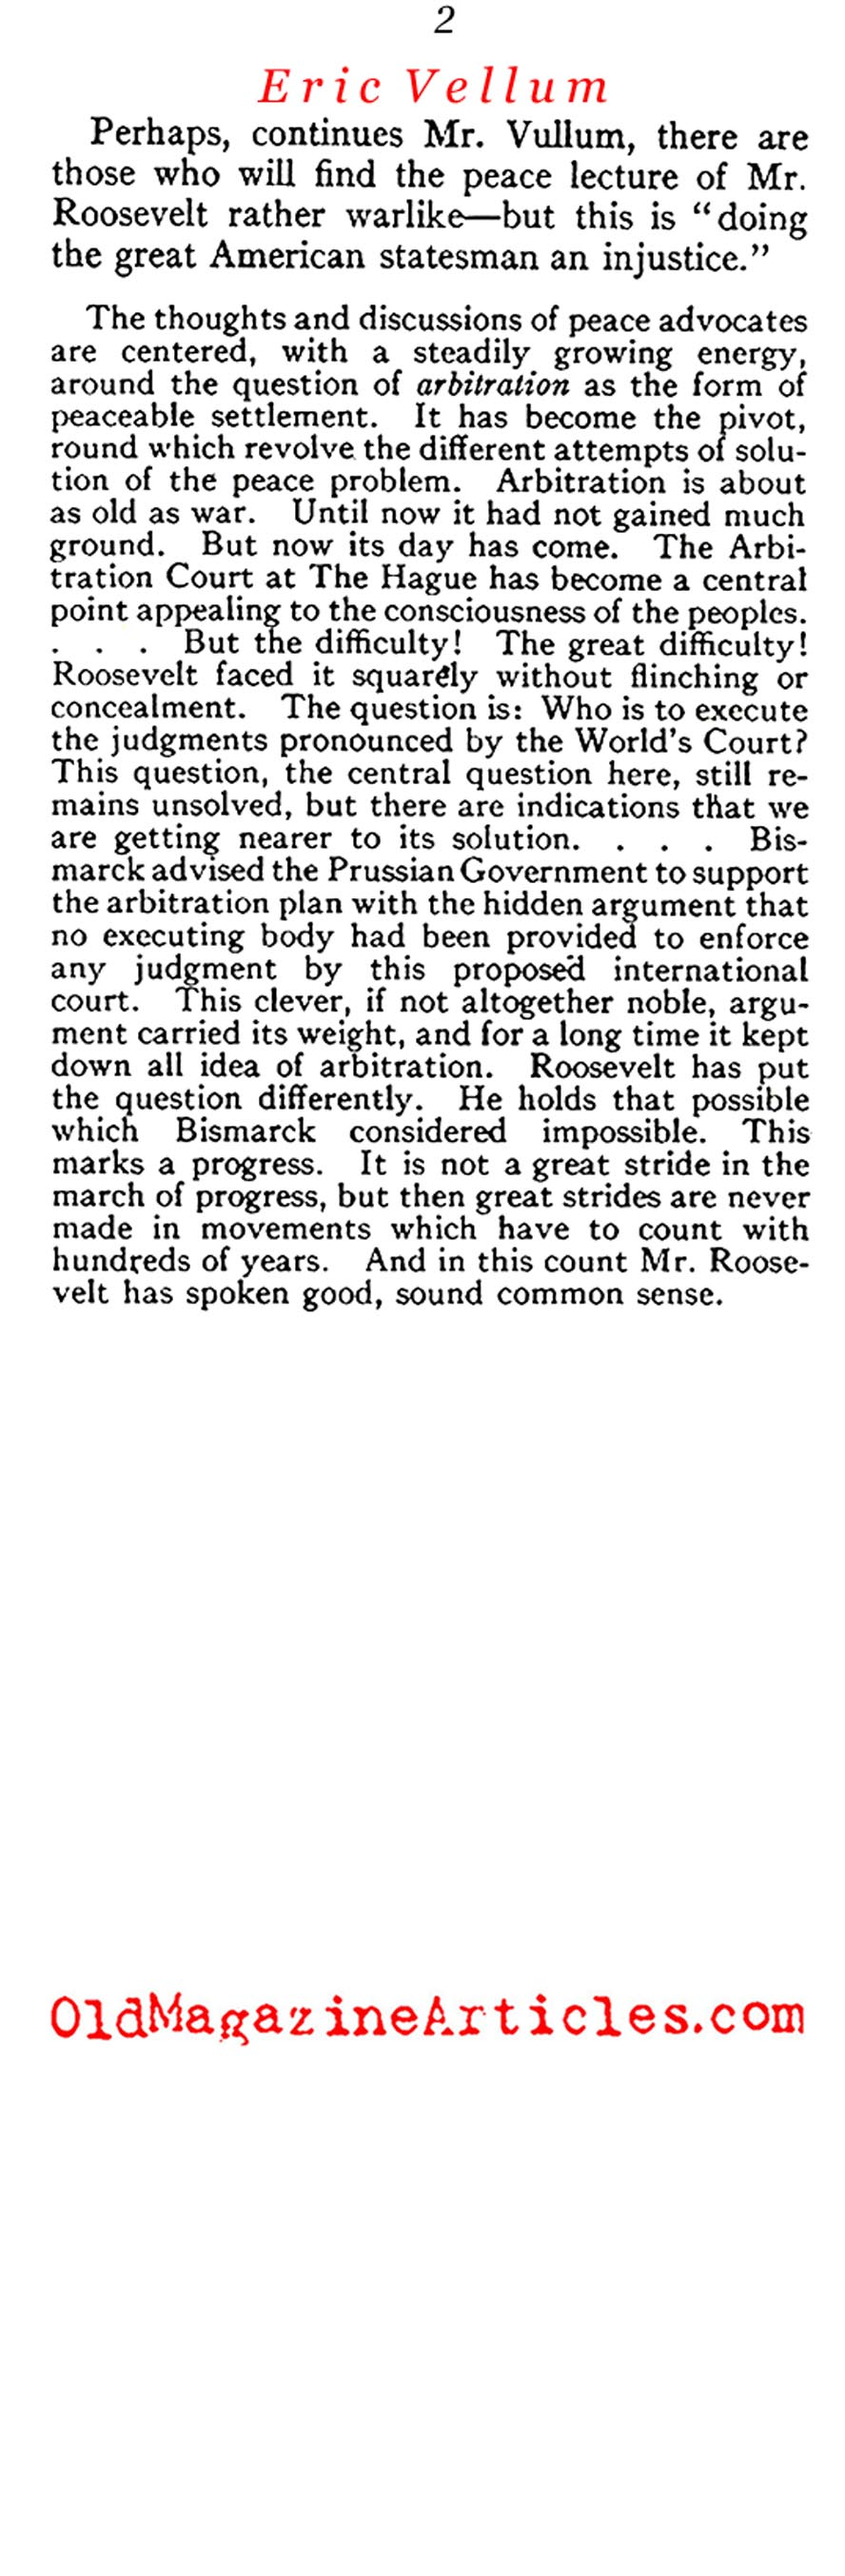 Theodore Roosevelt on the Subject of Disarmament Treaties <BR>(Review of Reviews, 1910)